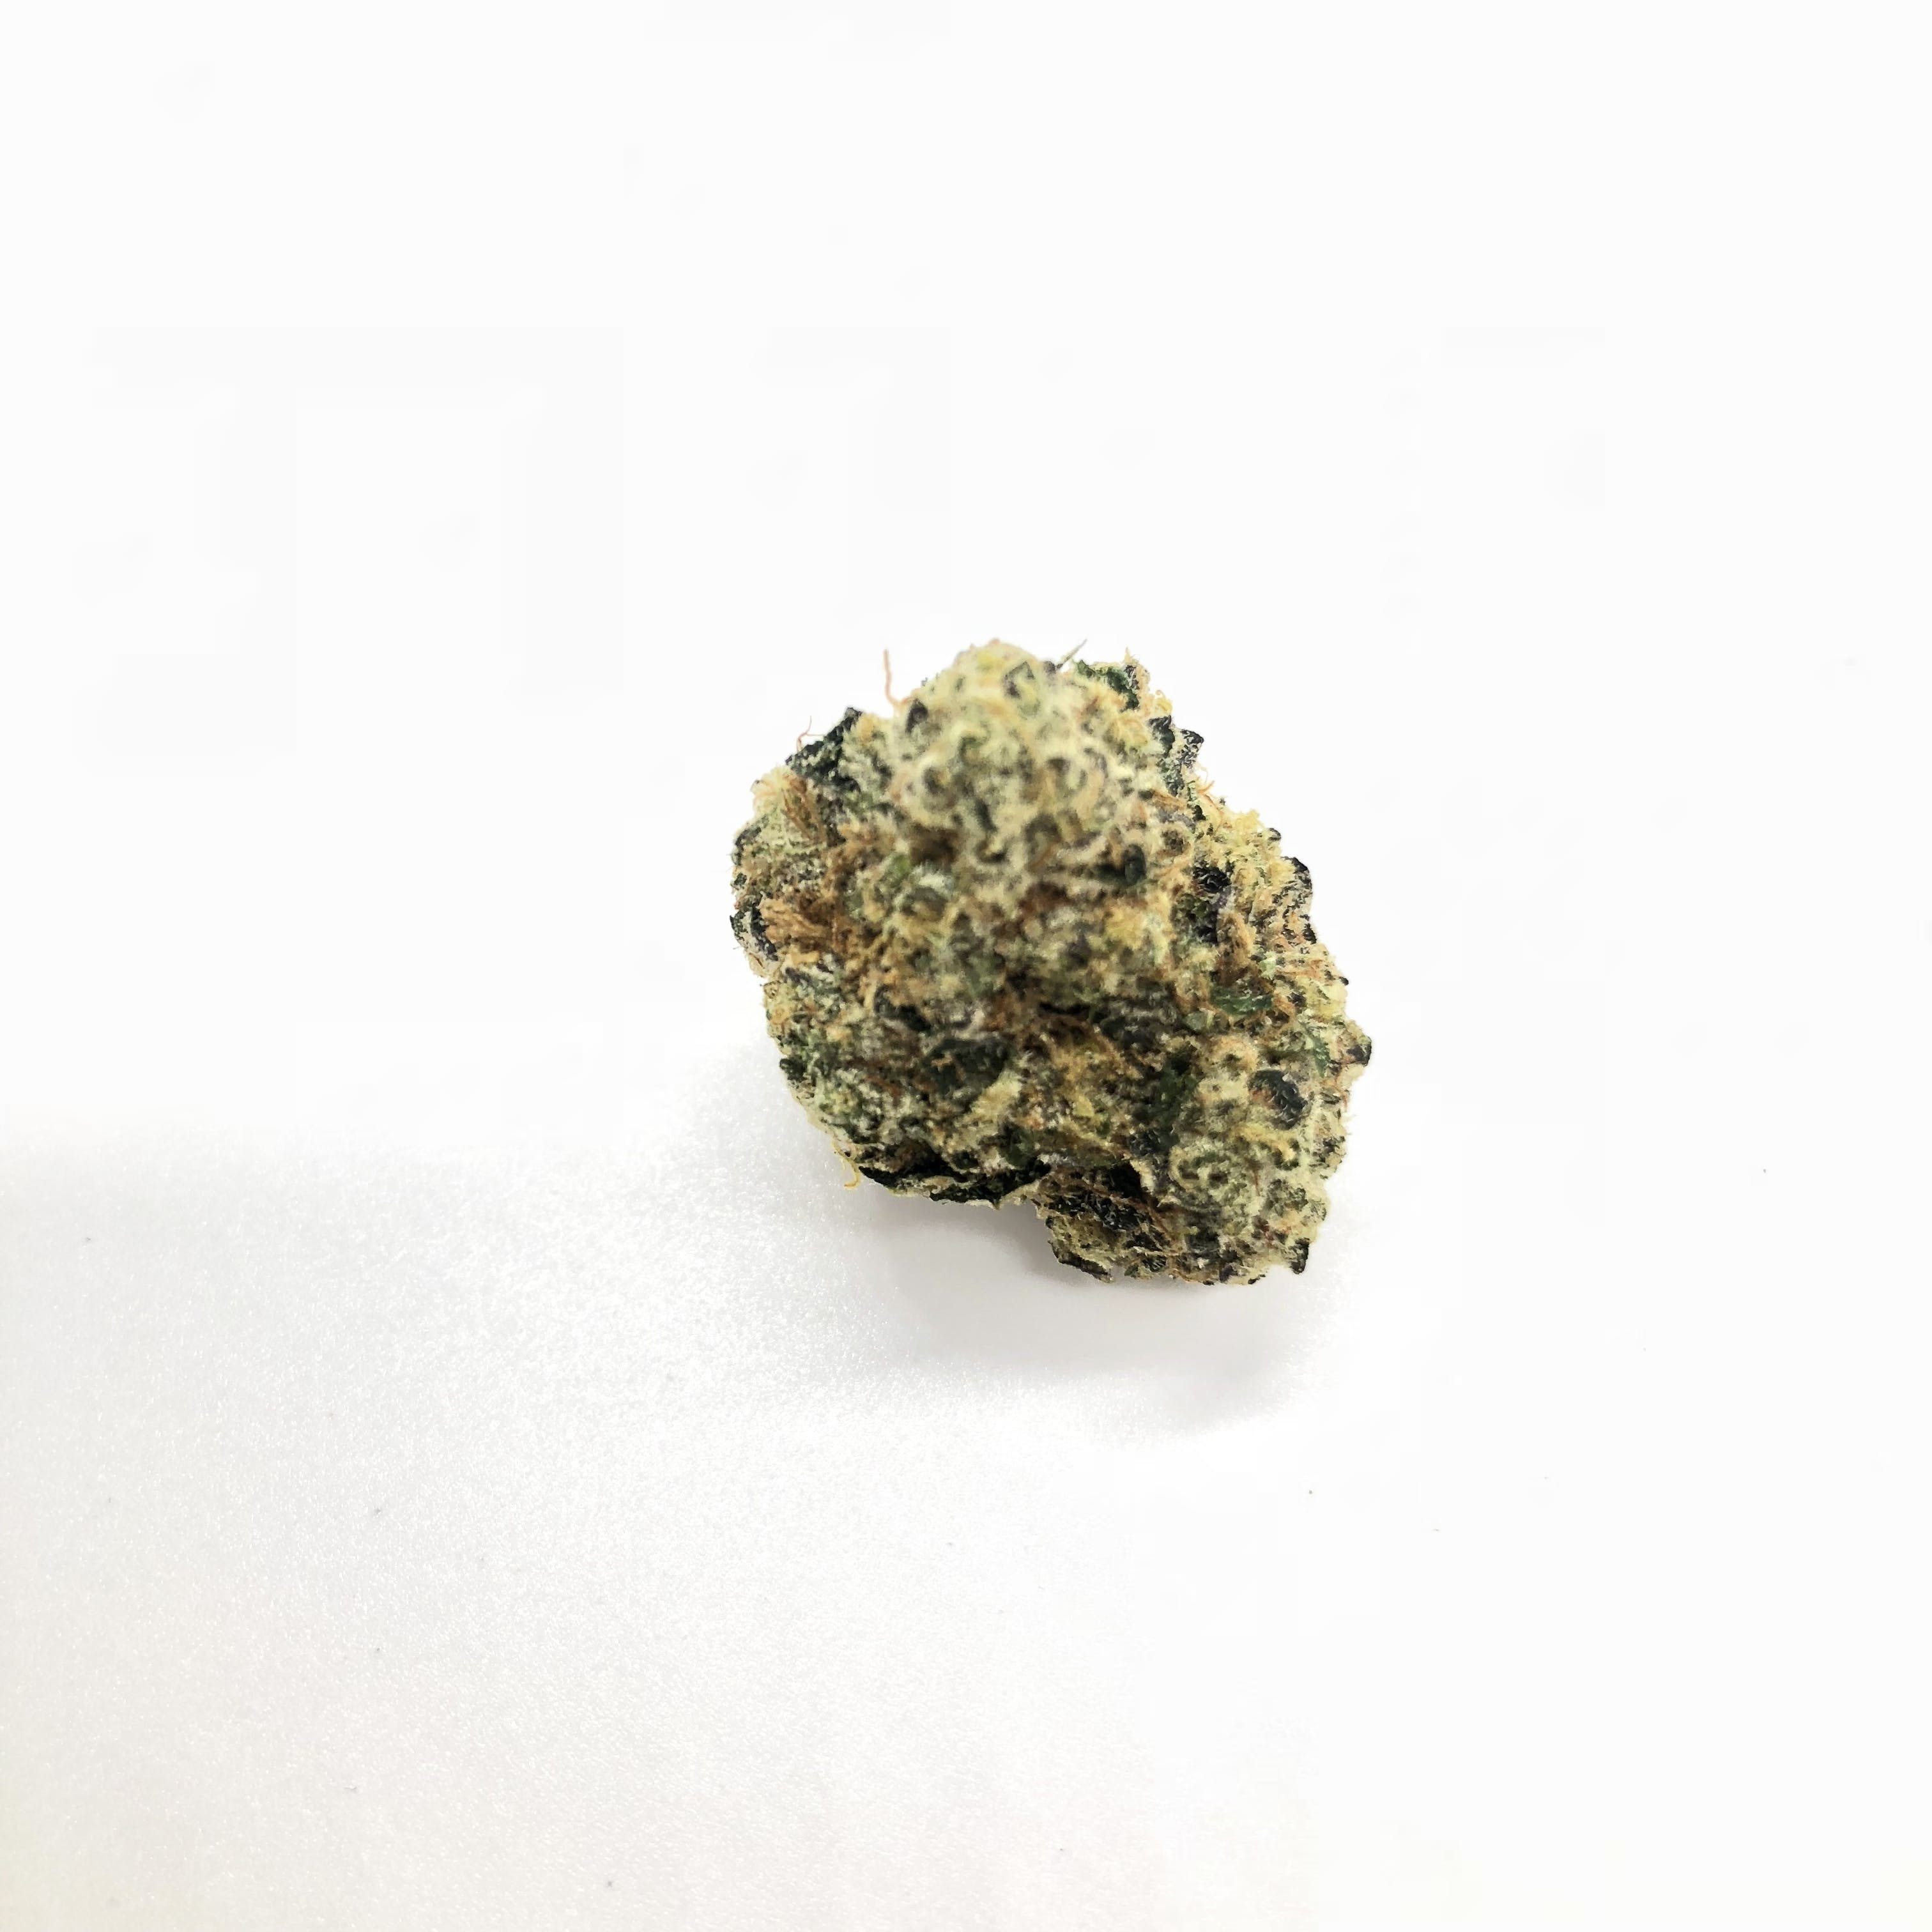 marijuana-dispensaries-333-old-newport-blvd-newport-daily-deals-pineapple-breath